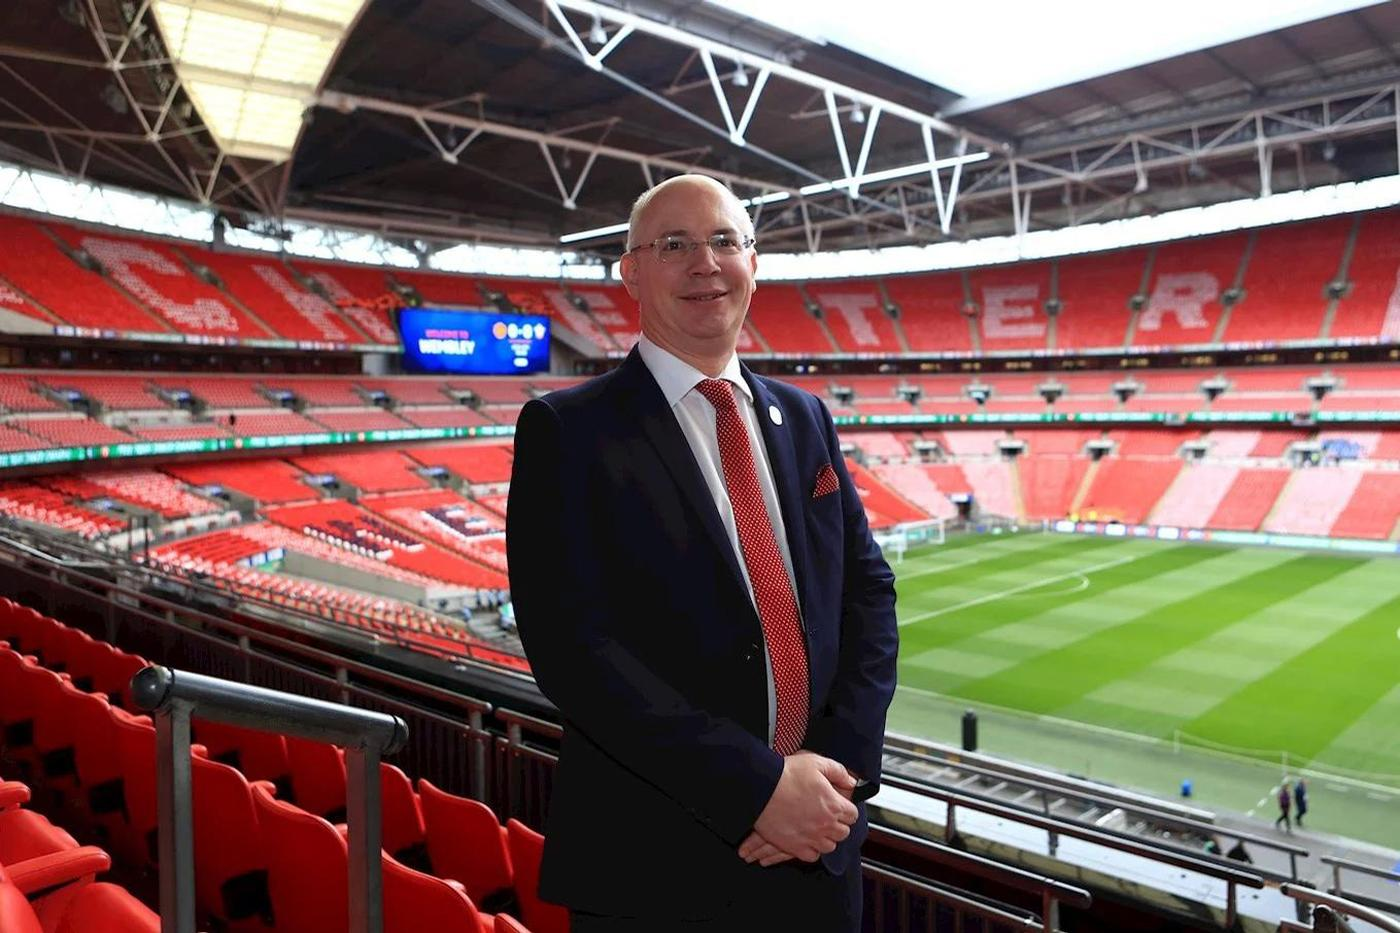 Harvey has worked in professional football for the past 25 years and became EFL chief executive in October 2013